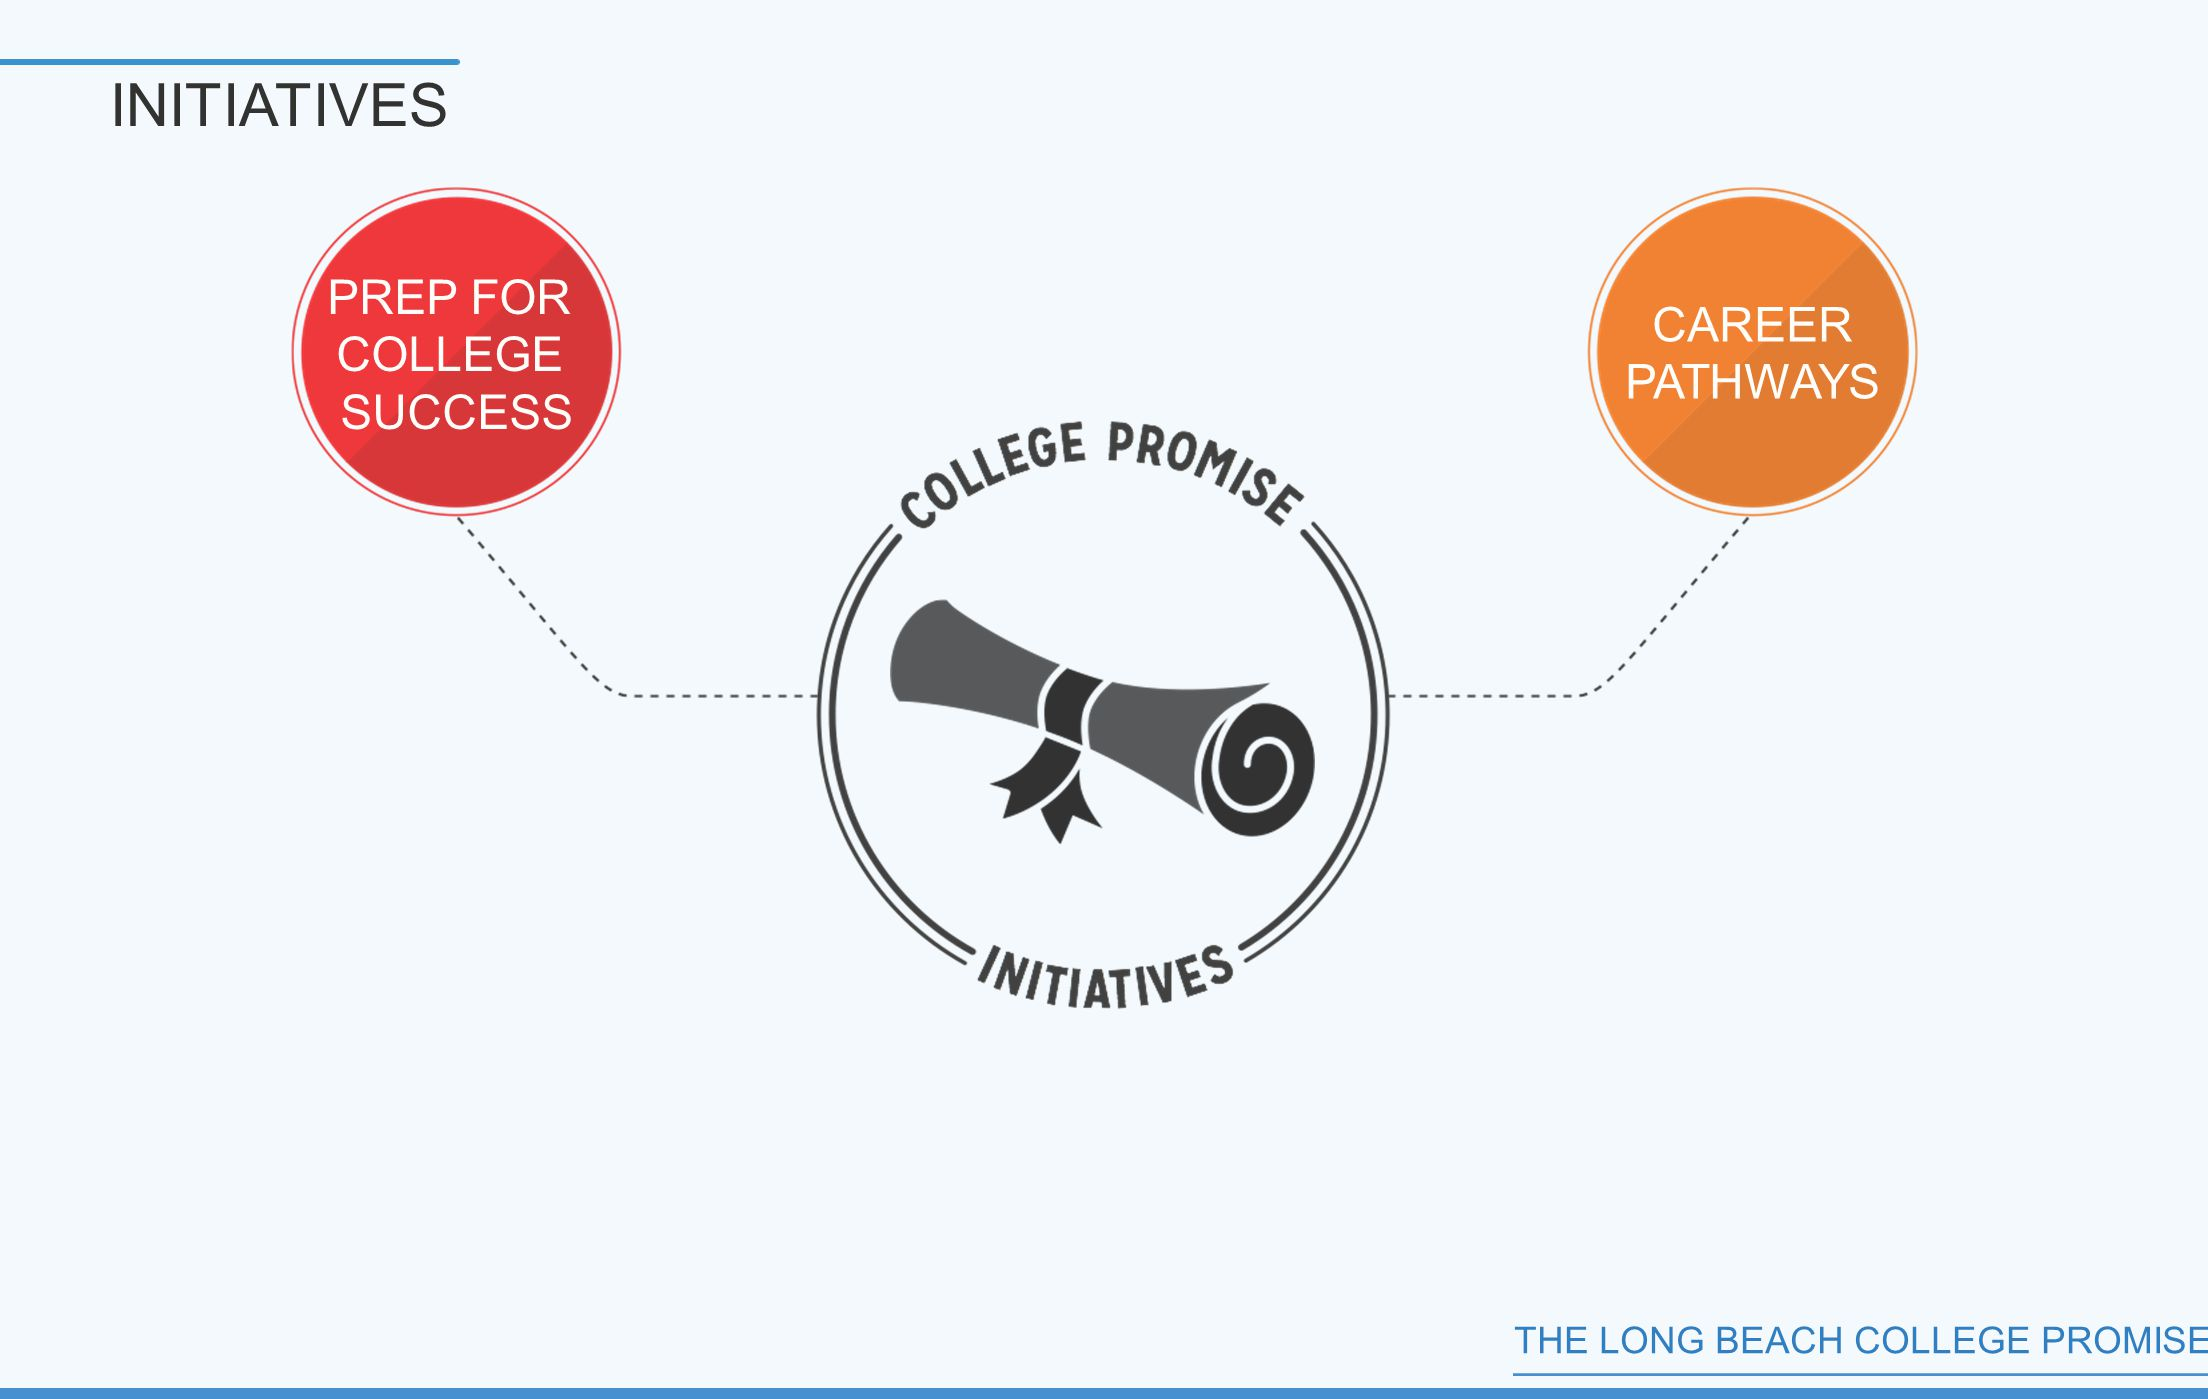 THE LONG BEACH COLLEGE PROMISE INITIATIVES PREP FOR COLLEGE SUCCESS CAREER PATHWAYS